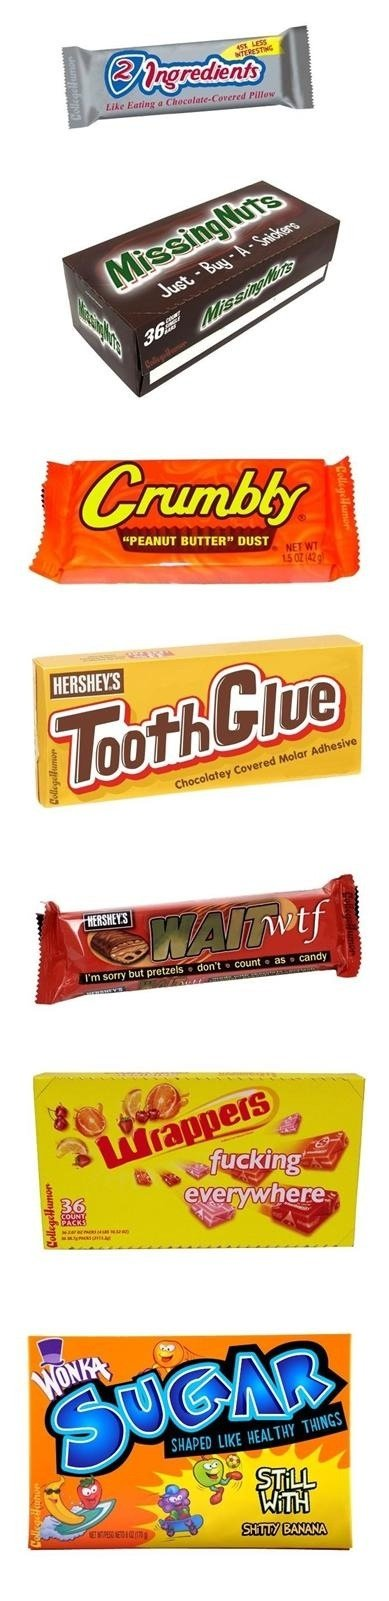 """true identity of candy. . Mather UT BUTTER"""" DUST. The bananas were my favorite... :'("""